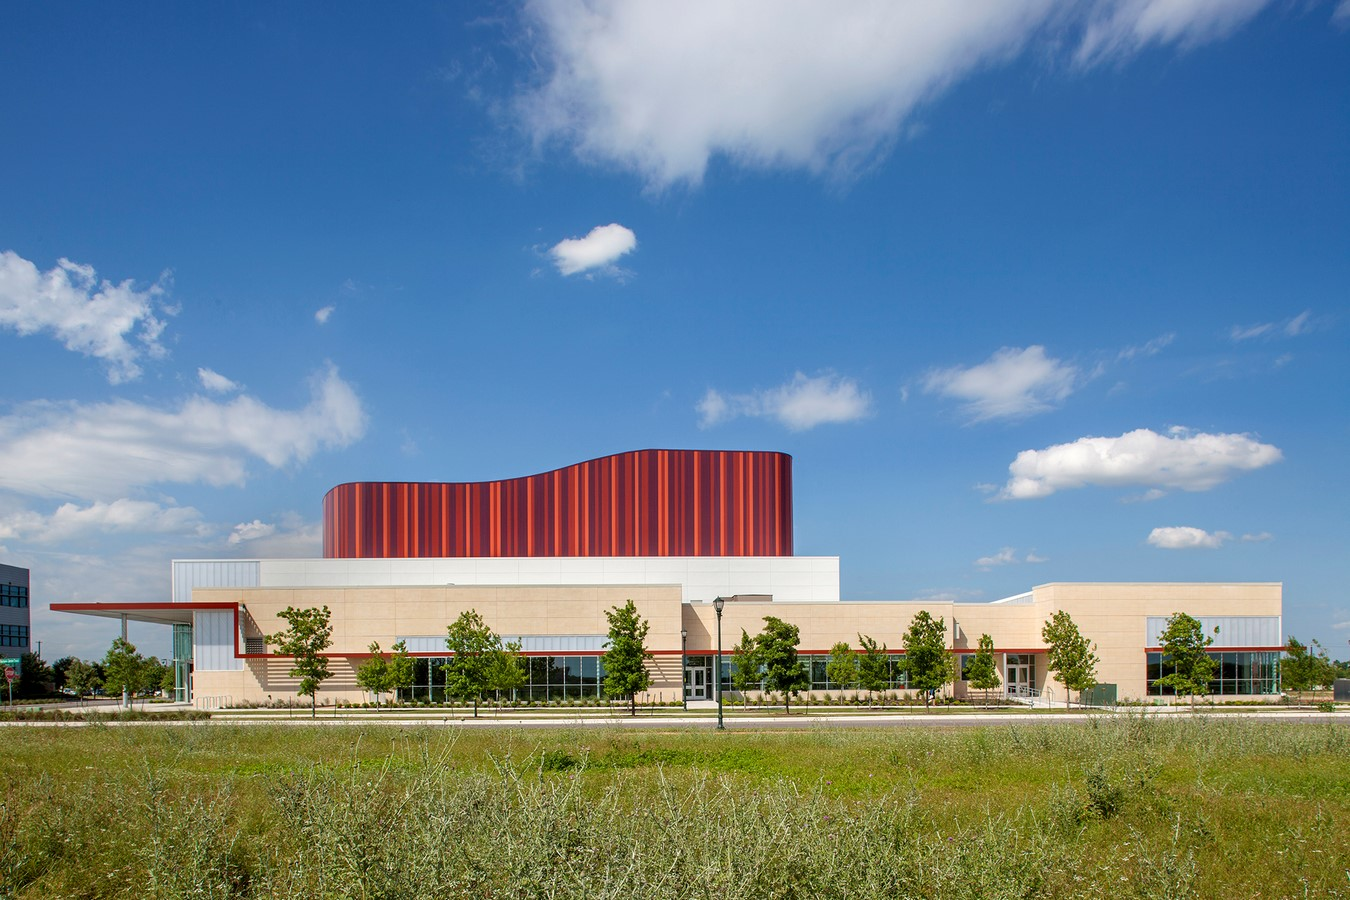 AISD Performing Arts Center by Miró Rivera Architects - Sheet1